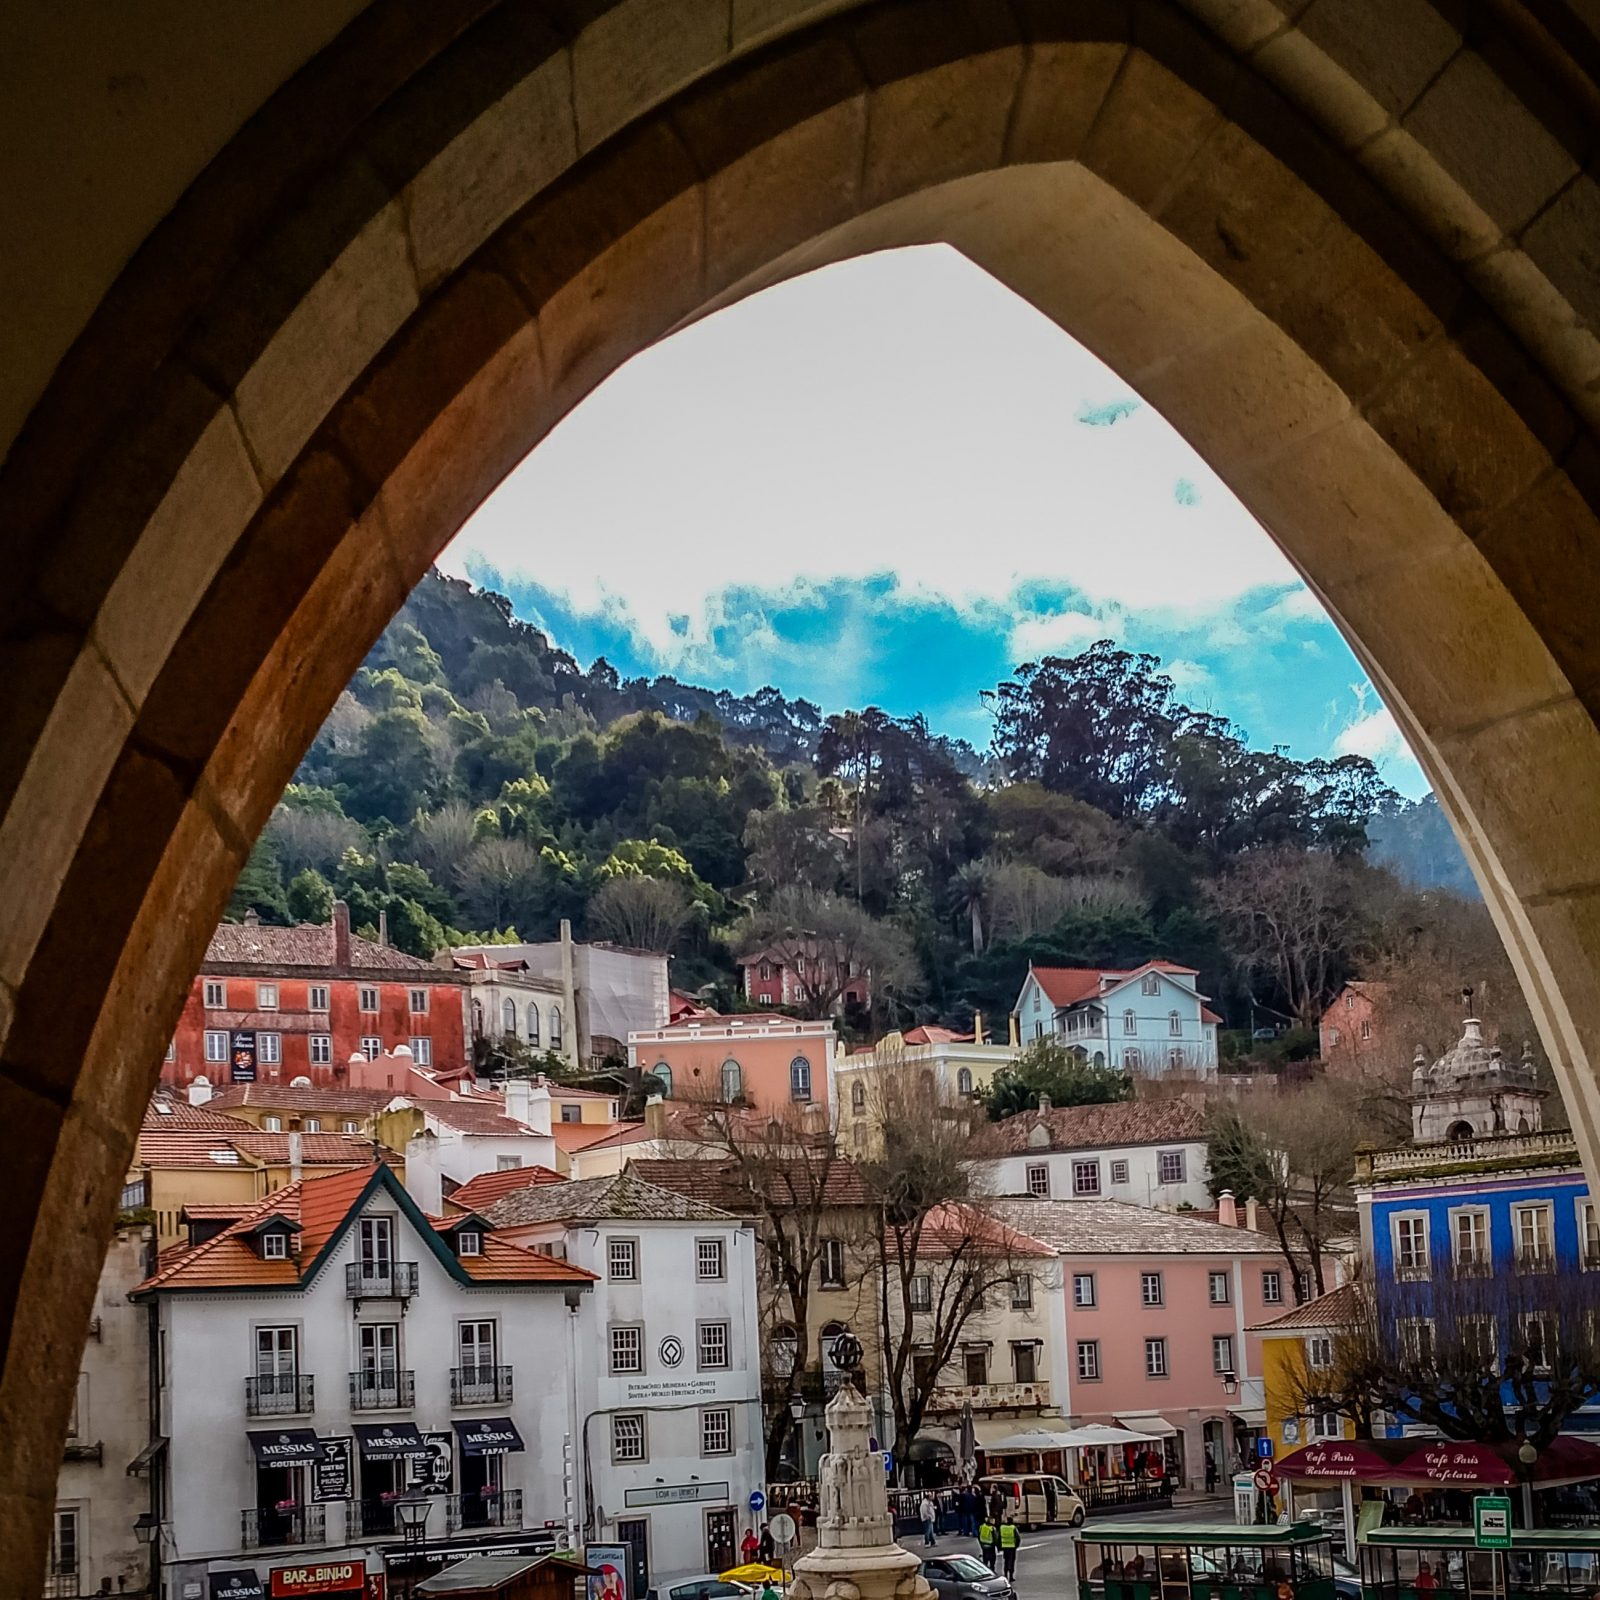 View from National Palace in Sintra